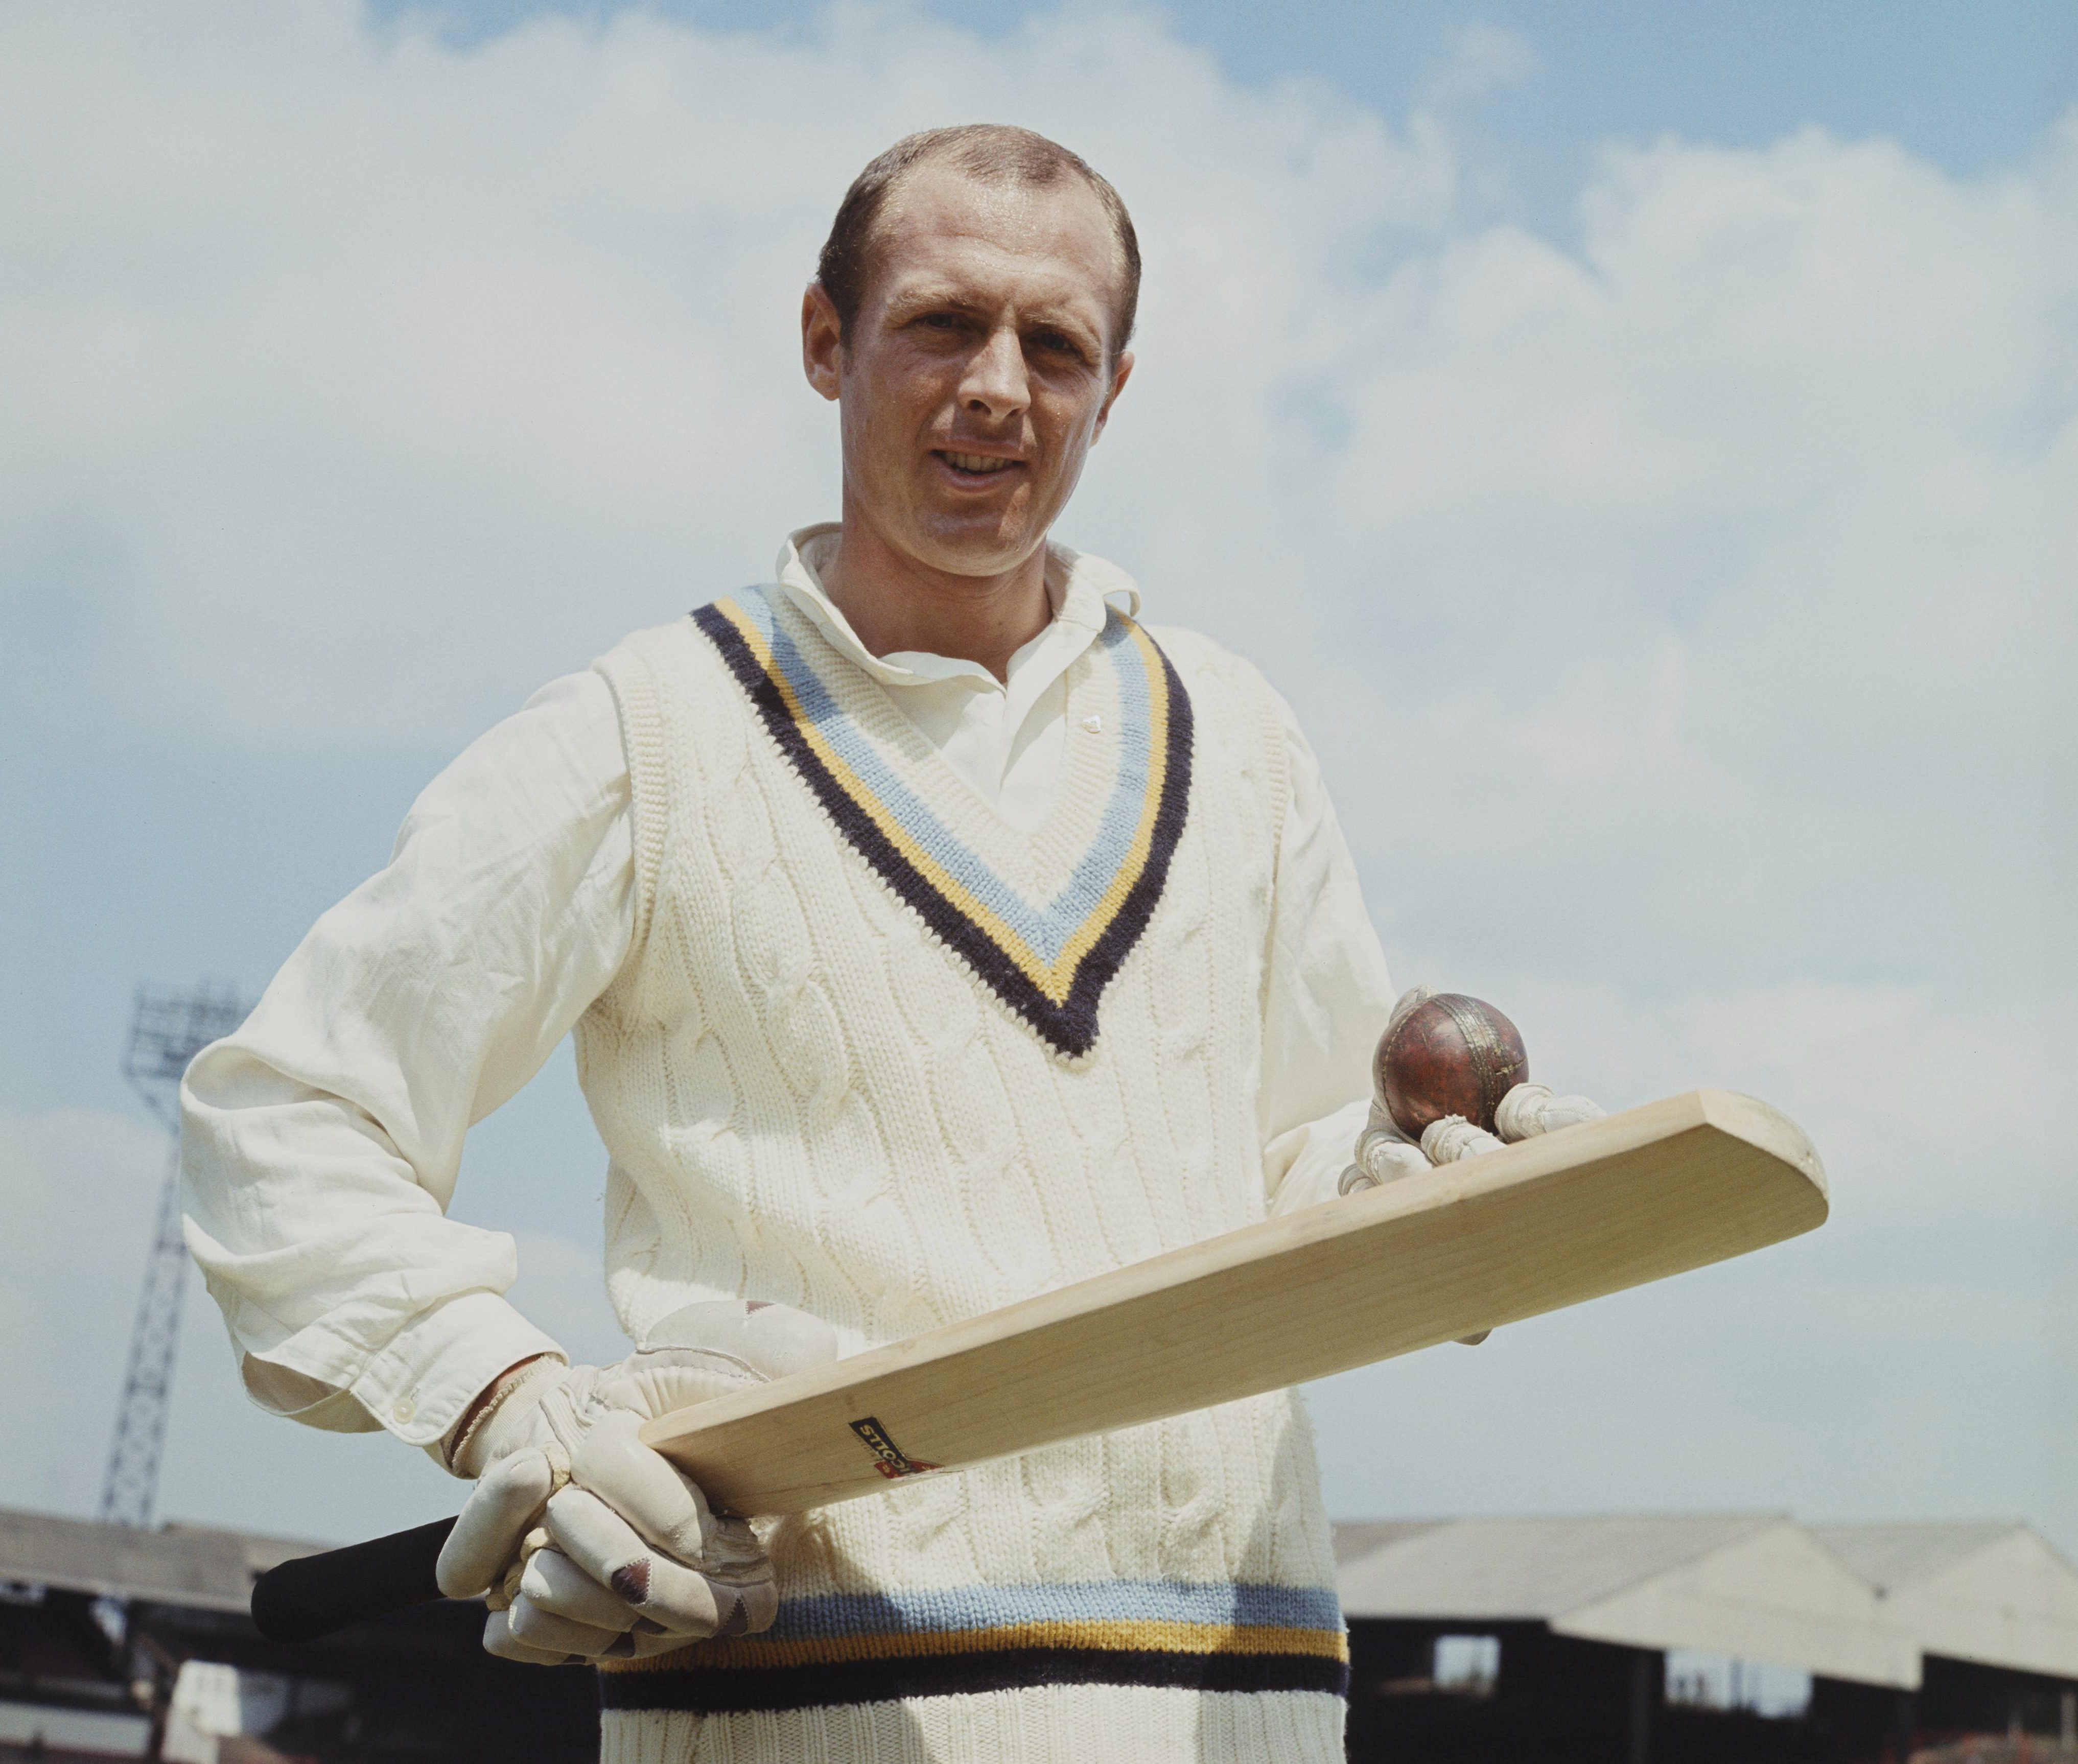 Boycott played 108 Test matches for England and scored 22 centuries